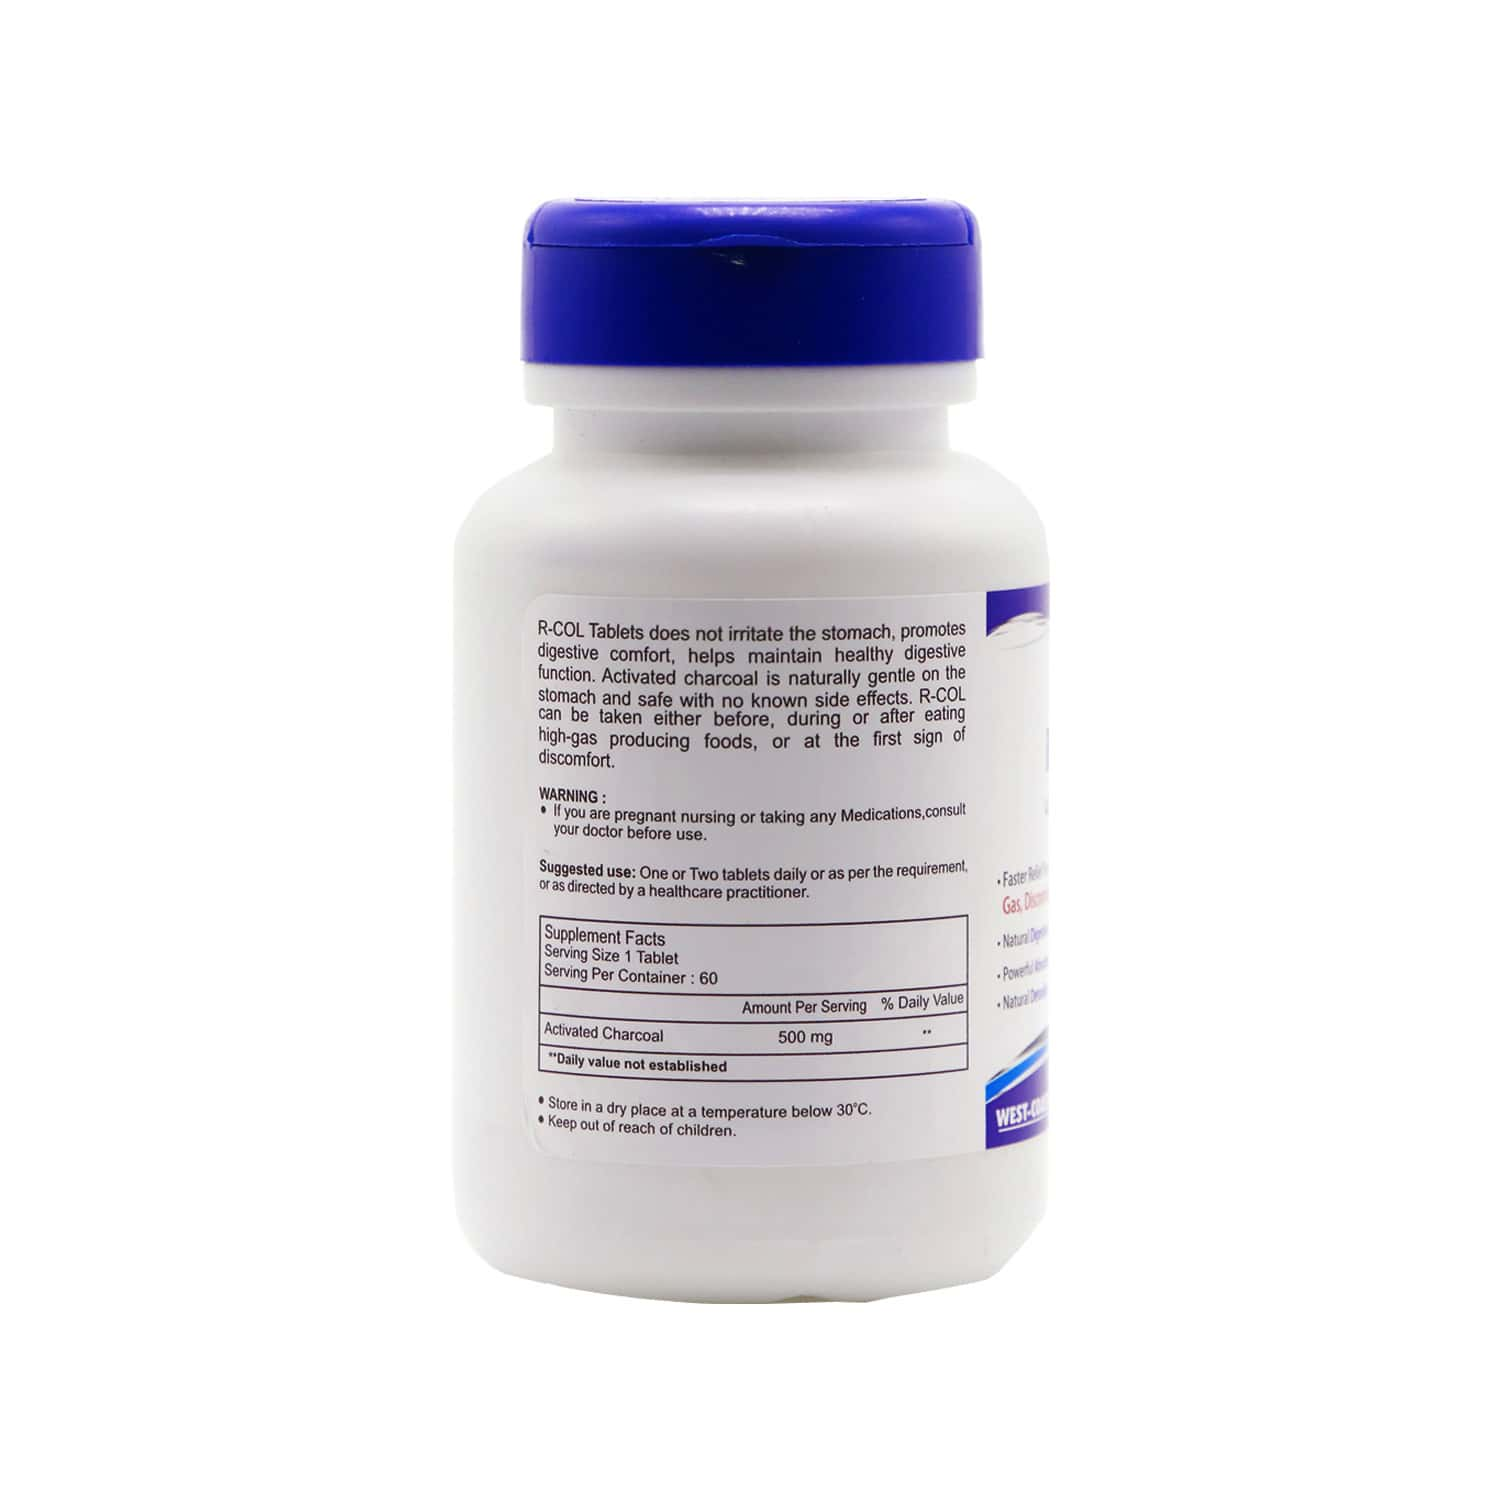 Healthvit R-col Activated Charcoal 500mg - 60 Tablets